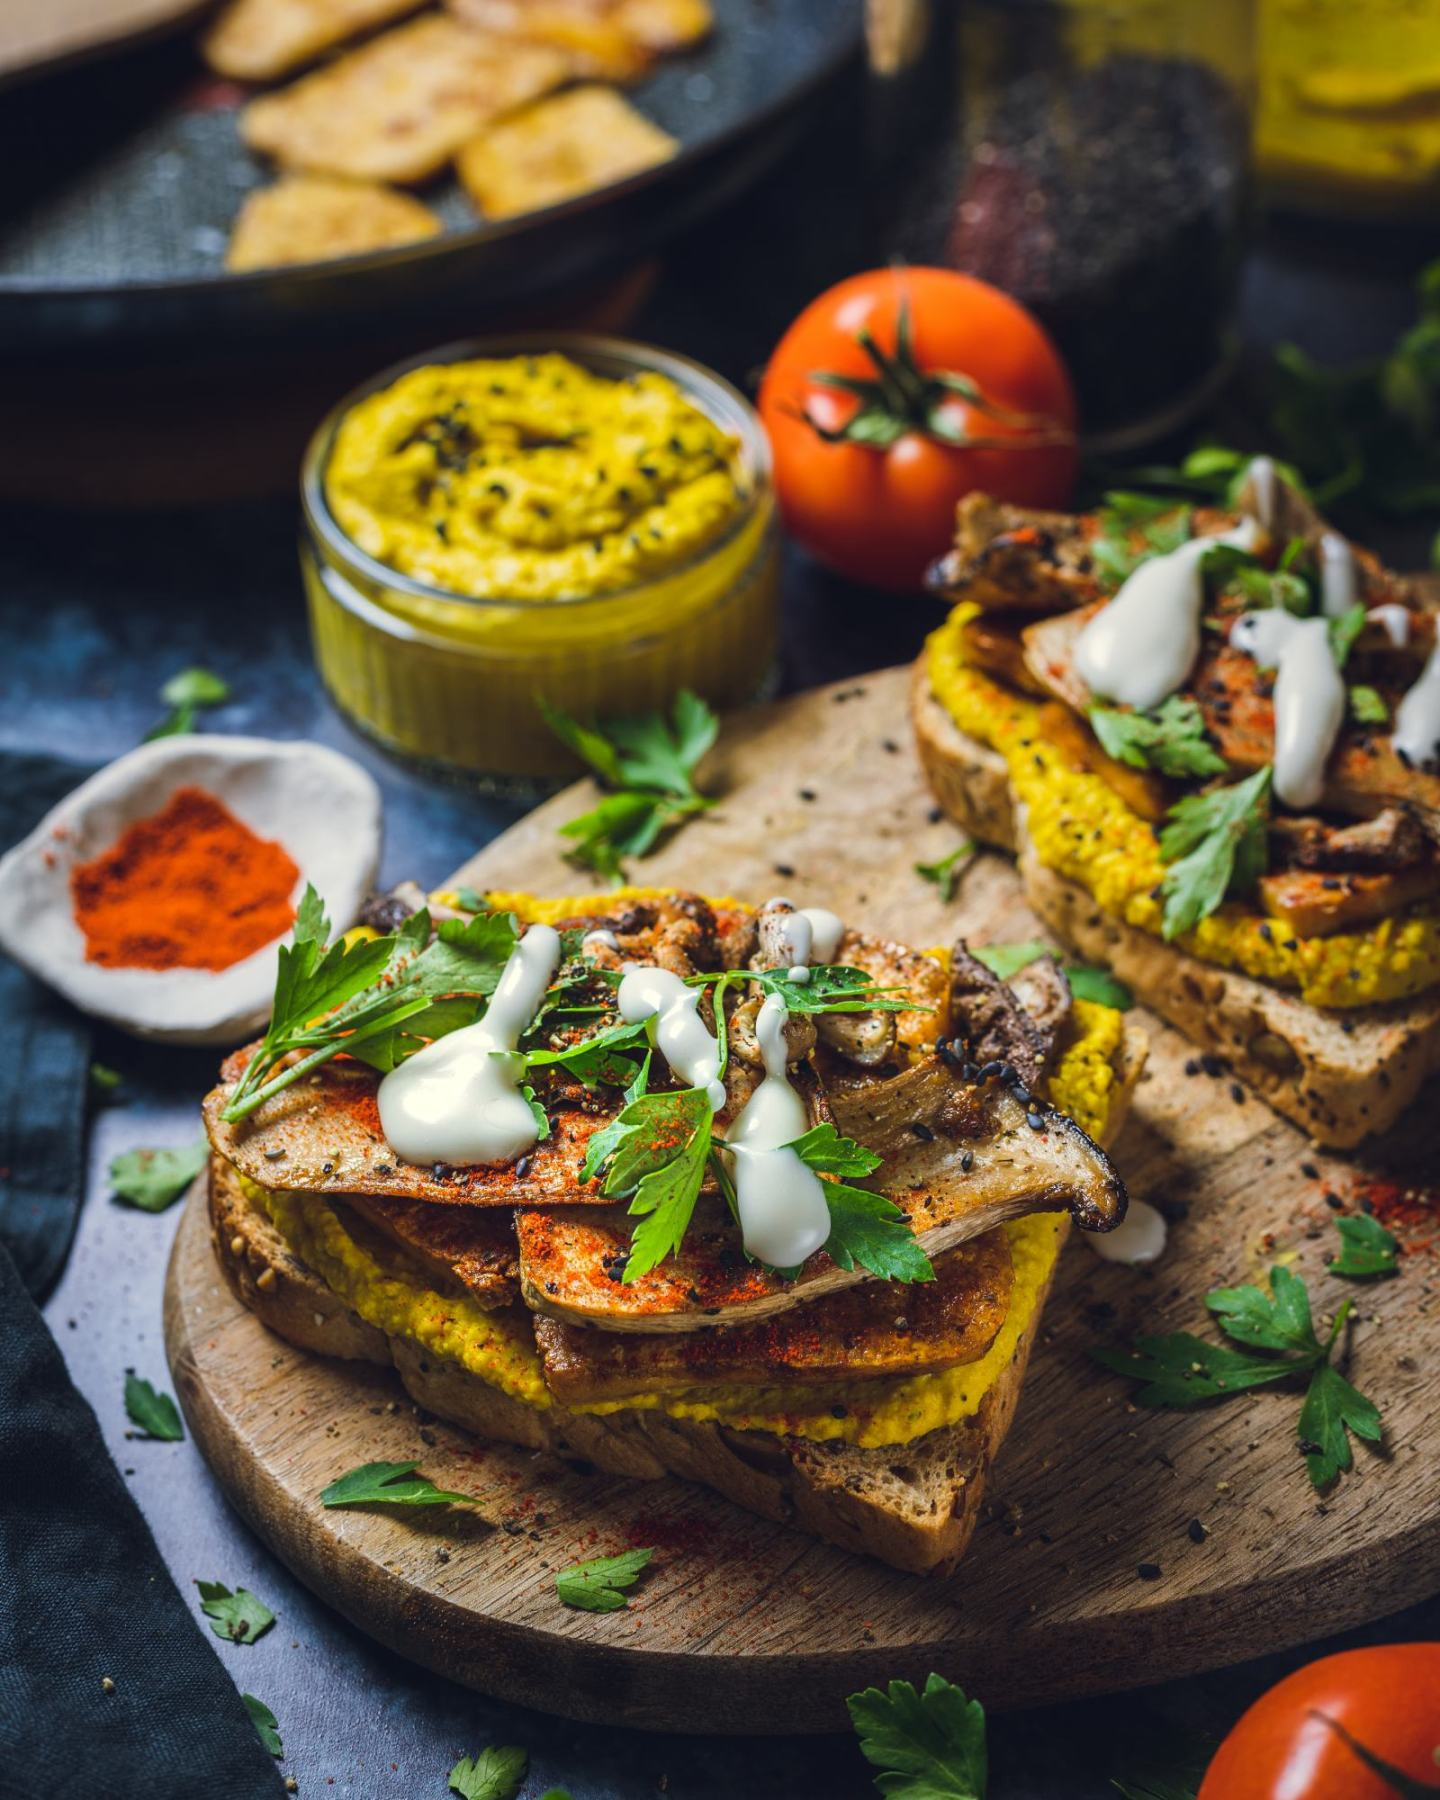 Curried Hummus and Tofu Sandwich